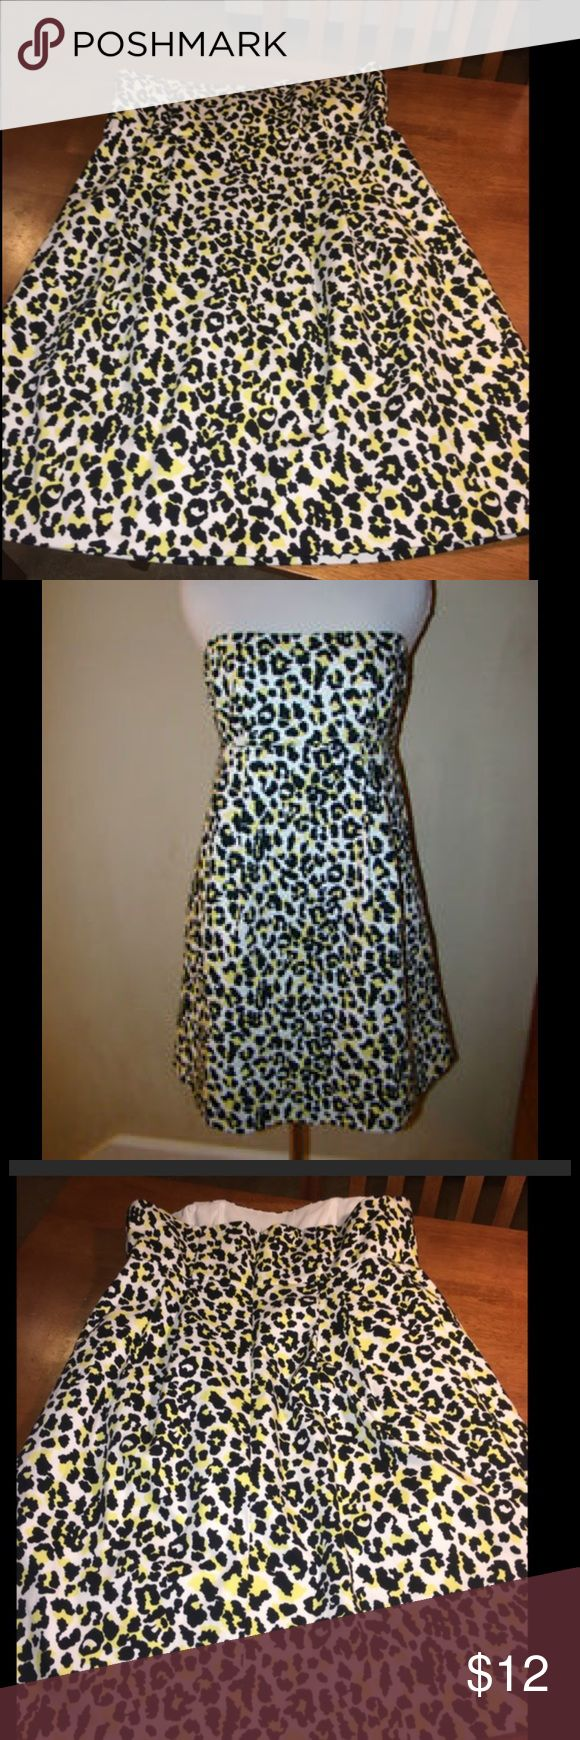 Michael Kors Size 10 Strapless Cheetah Print Dress Michael Kors dress.  Strapless, fit and flare style.  Cheetah print.  Mid thigh length.  Size 10.  Excellent condition.  Important:   All items are freshly laundered as applicable prior to shipping (new items and shoes excluded).  Not all my items are from pet/smoke free homes.  Price is reduced to reflect this!   Thank you for looking! Michael Kors Dresses Mini